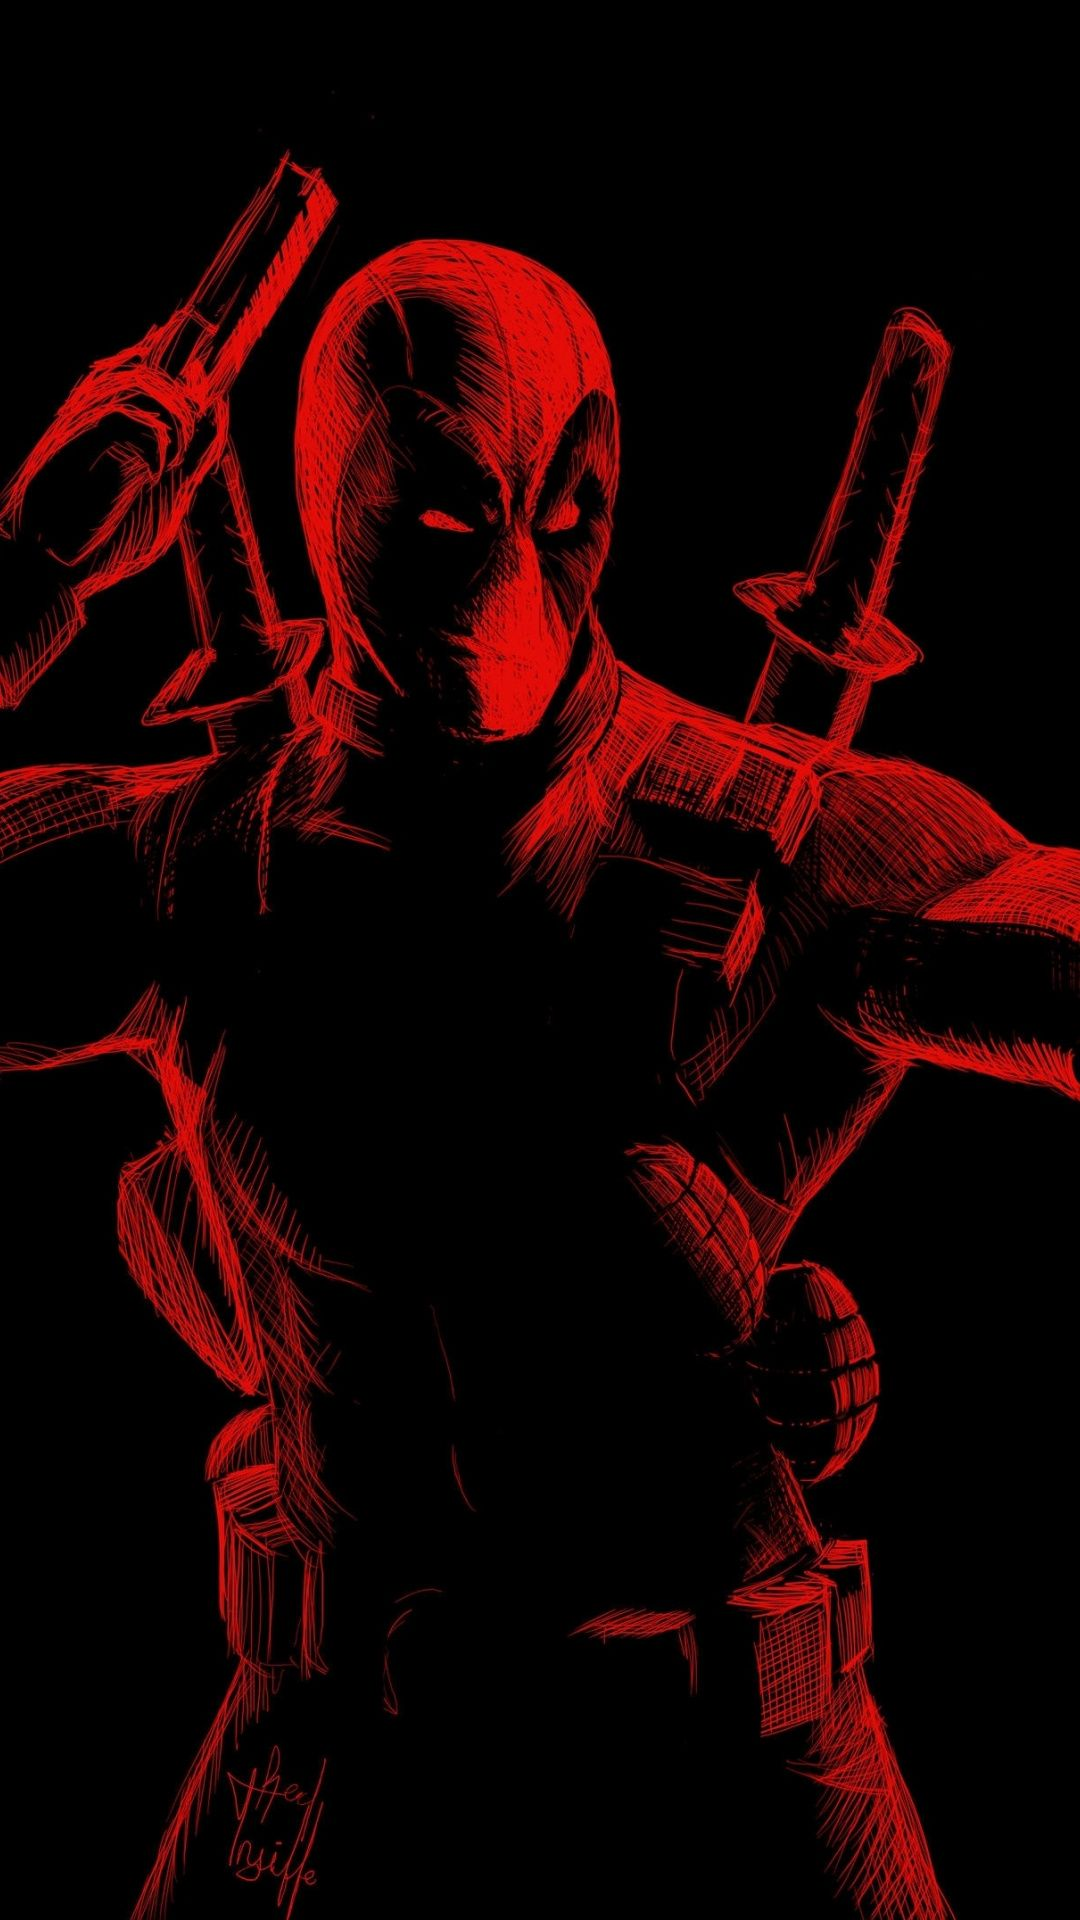 Red Line Arts Deadpool 1080x1920 Wallpaper Deadpool Wallpaper Deadpool Artwork Deadpool Art